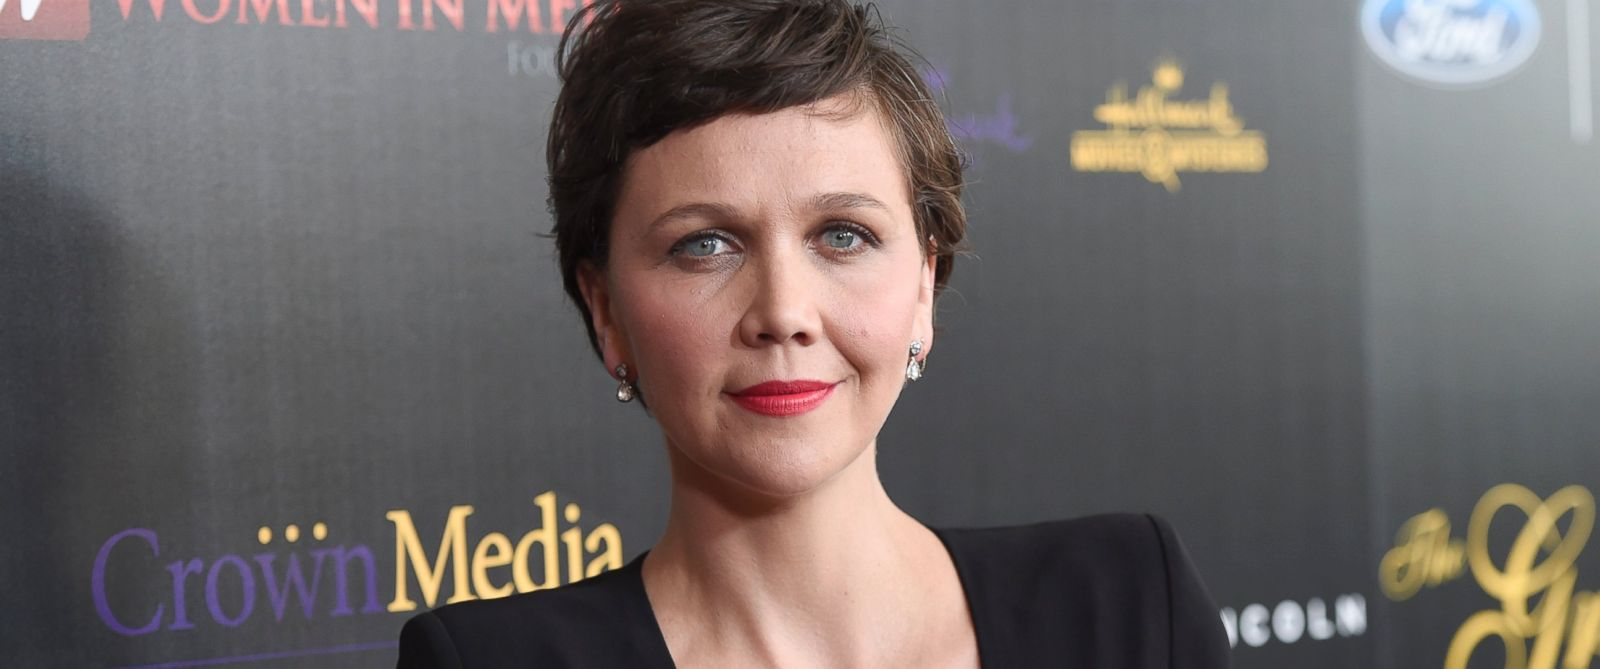 whos dating maggie gyllenhaal Maggie gyllenhaal got married to peter sarsgaard they were dating for three years after getting together in jun 2002 after 3 years of engagement, they married on 2nd may 2009.